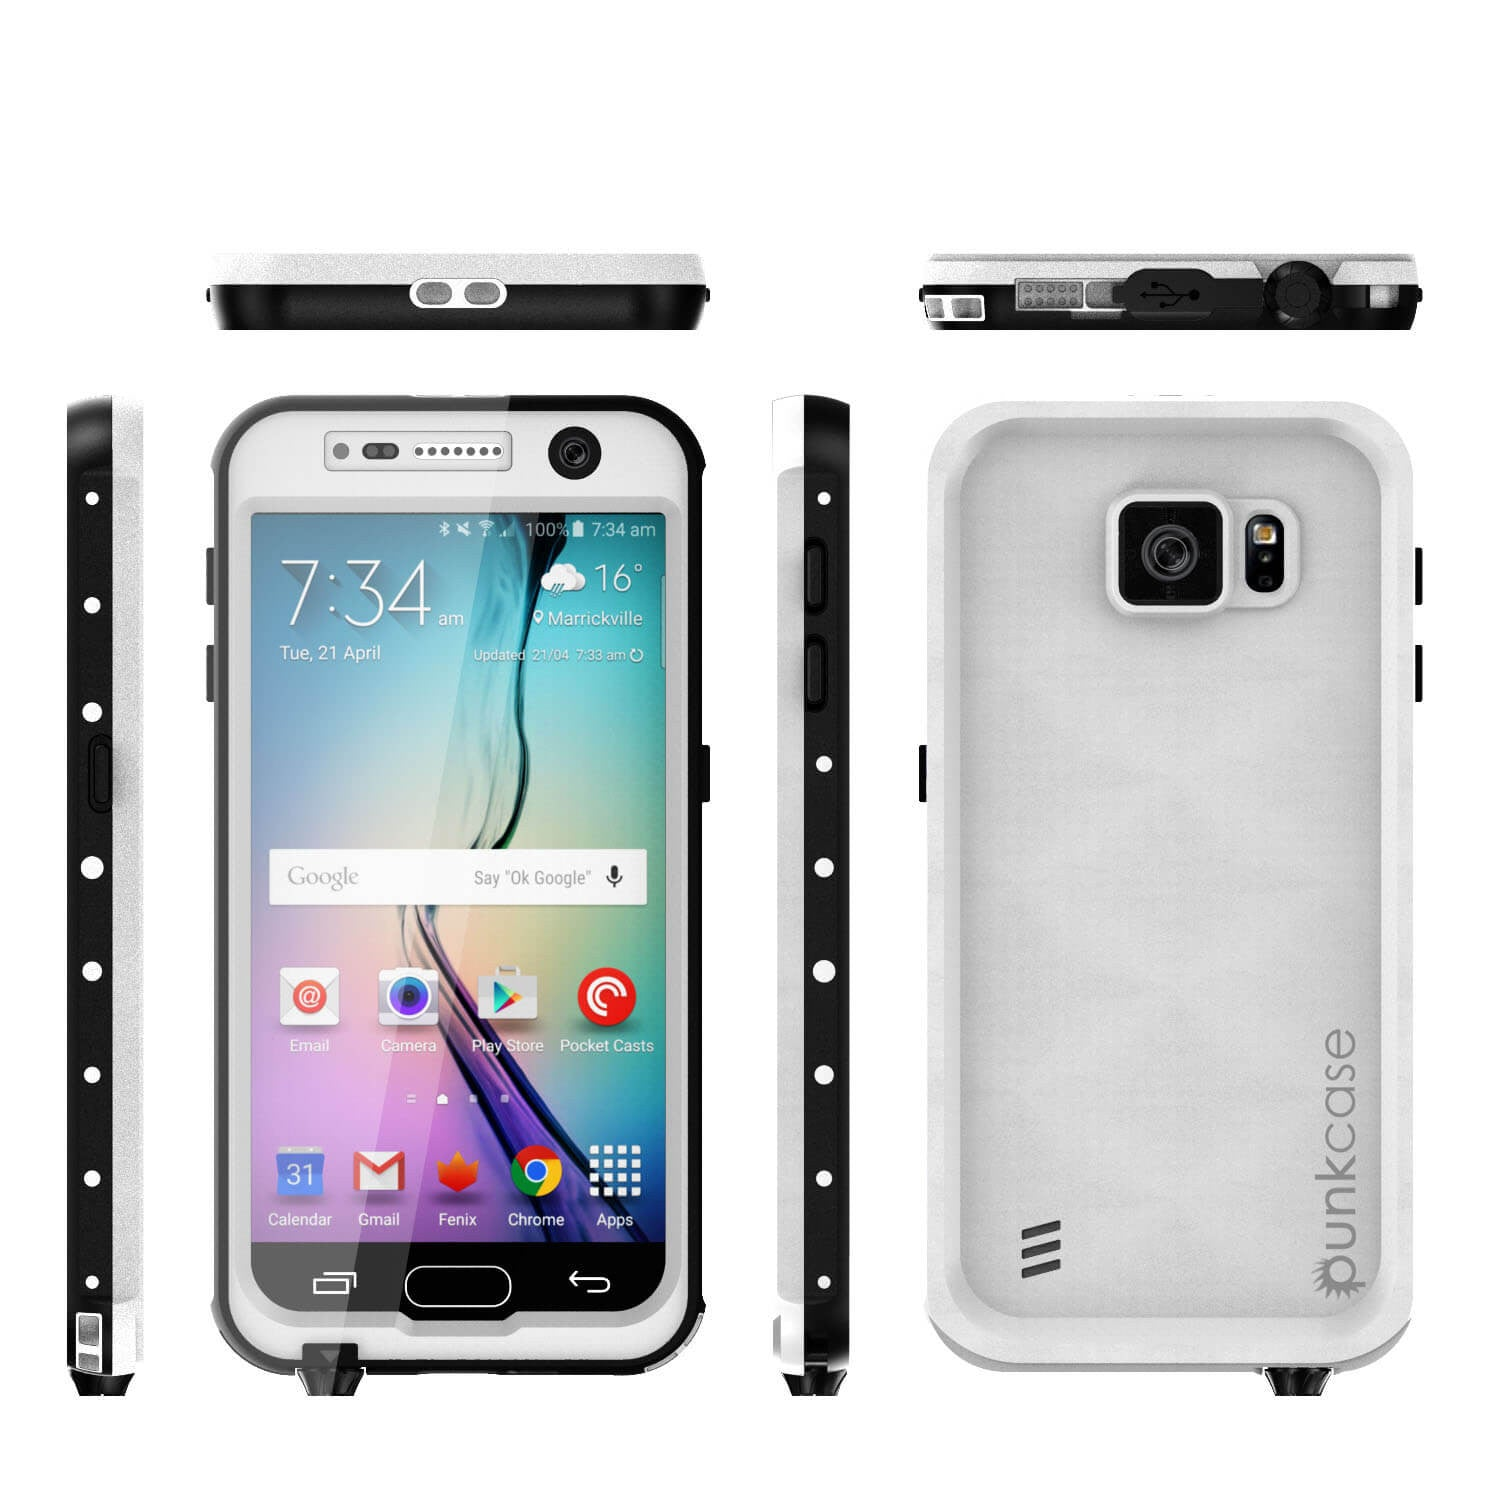 Galaxy S6 Waterproof Case, Punkcase StudStar White Thin 6.6ft Underwater IP68 Shock/Dirt/Snow Proof